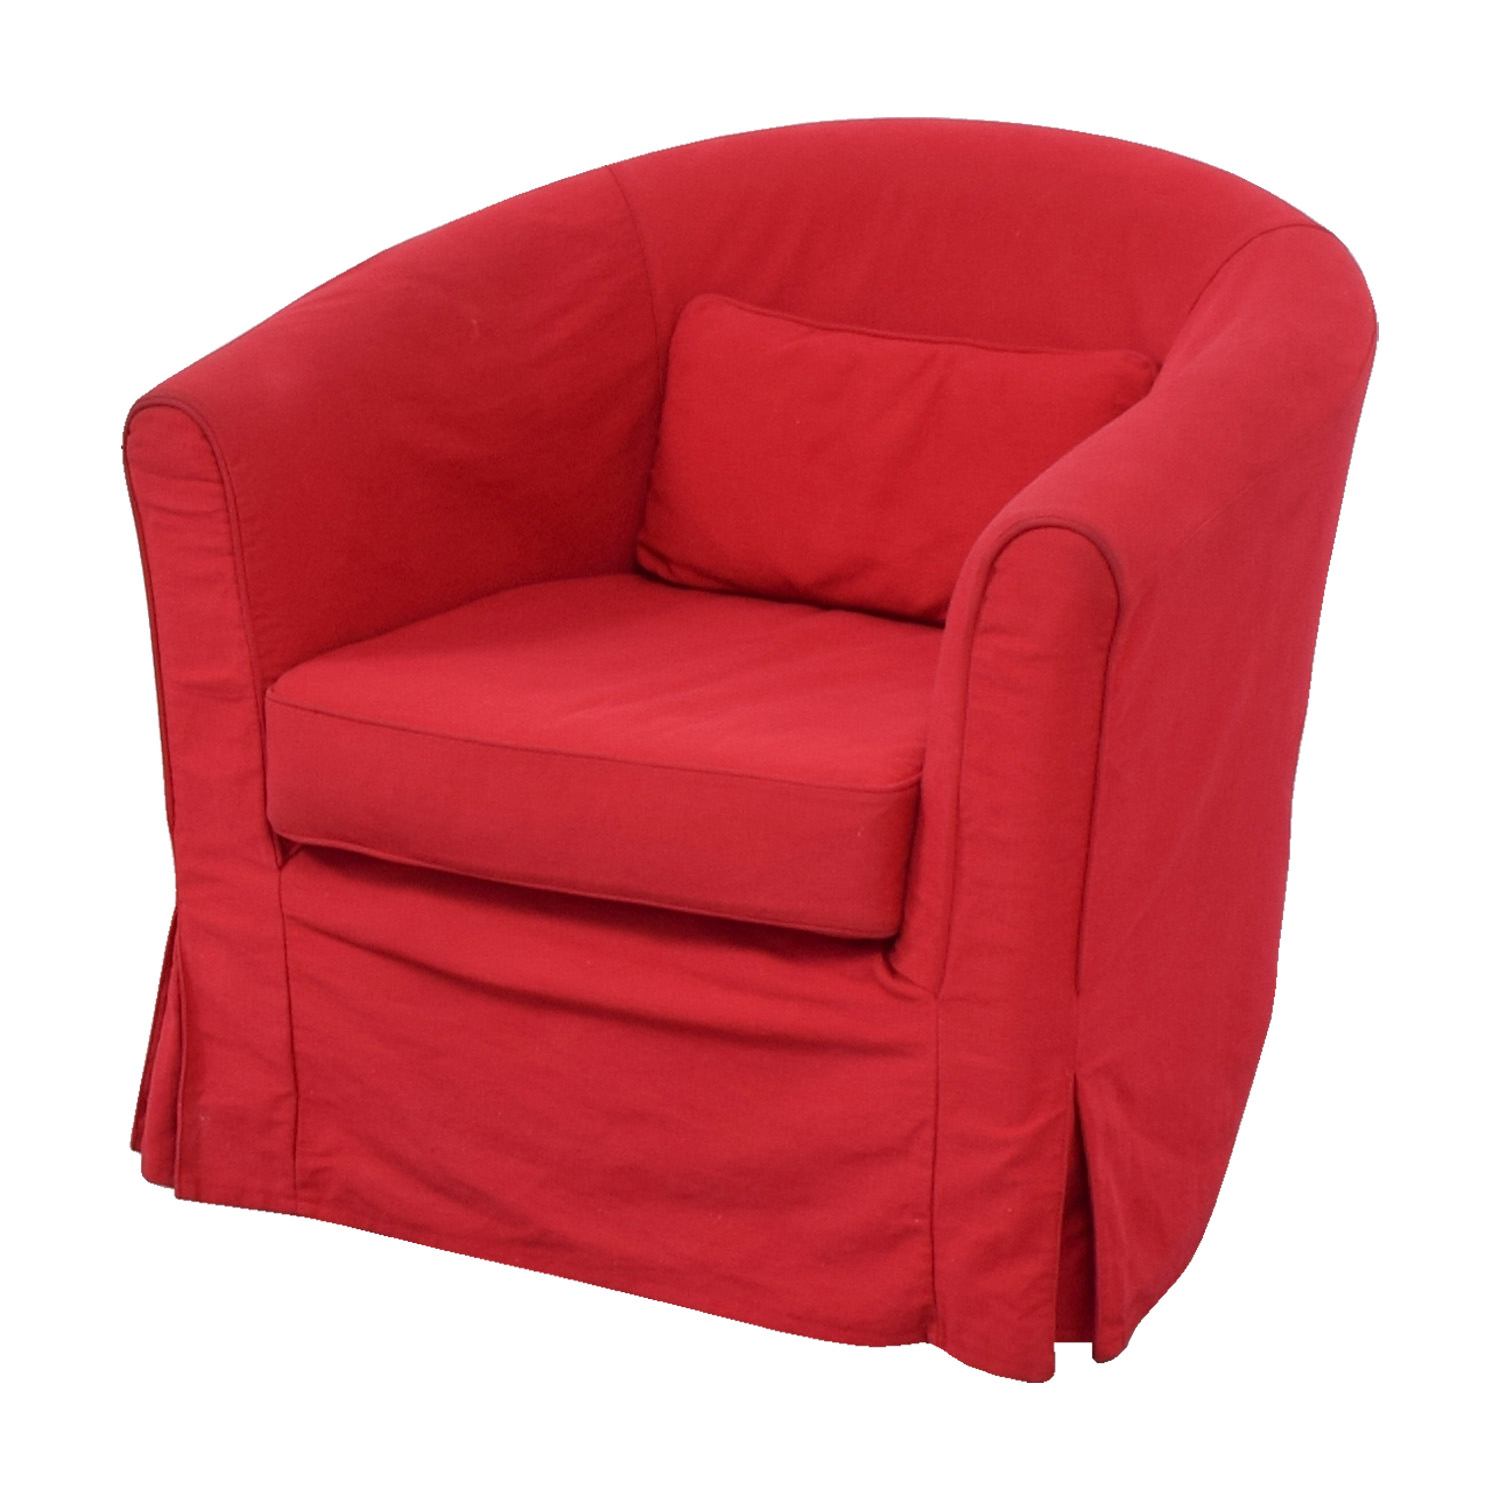 74 off crate barrel crate barrel red upholstered for Red and white upholstered chairs